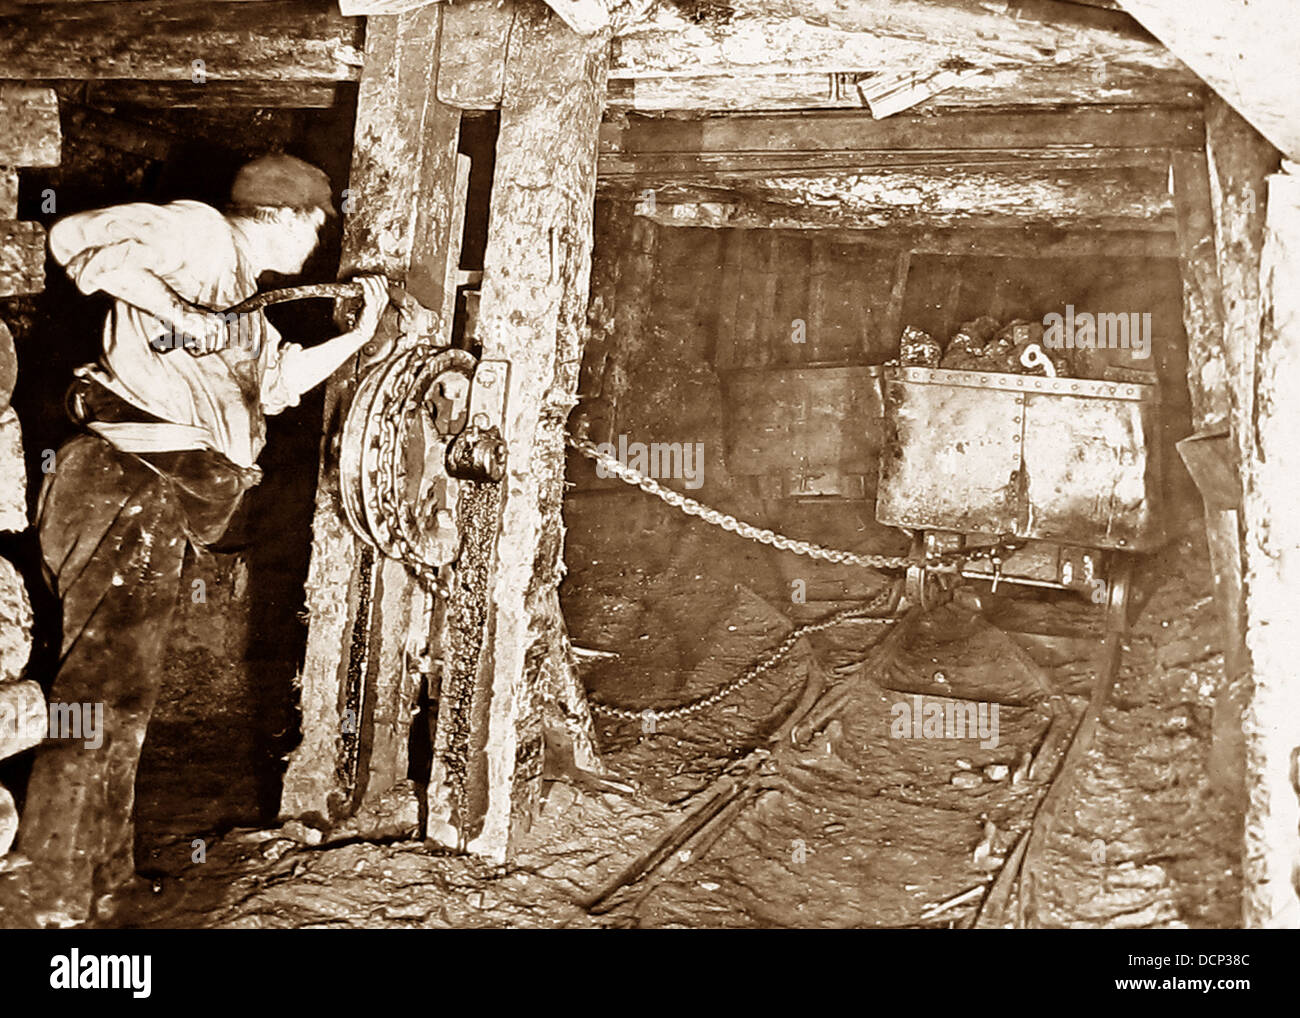 Coal miner using self-acting incline haulage early 1900s - Stock Image